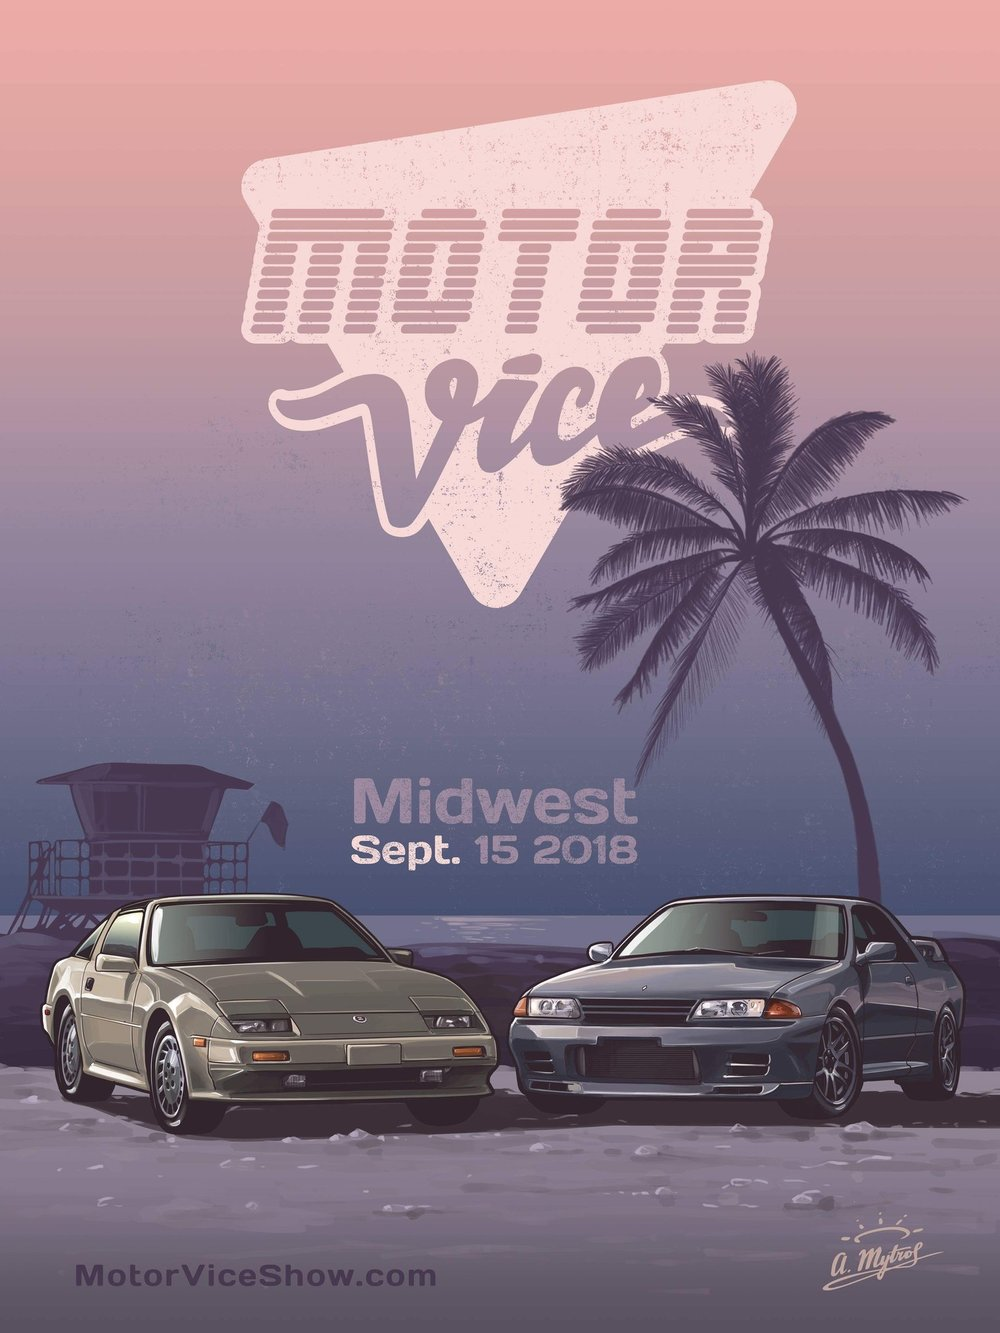 MotorVice Z31/R32 print   Righteous Print featuring two turbo titans of the MotorVice era   $22